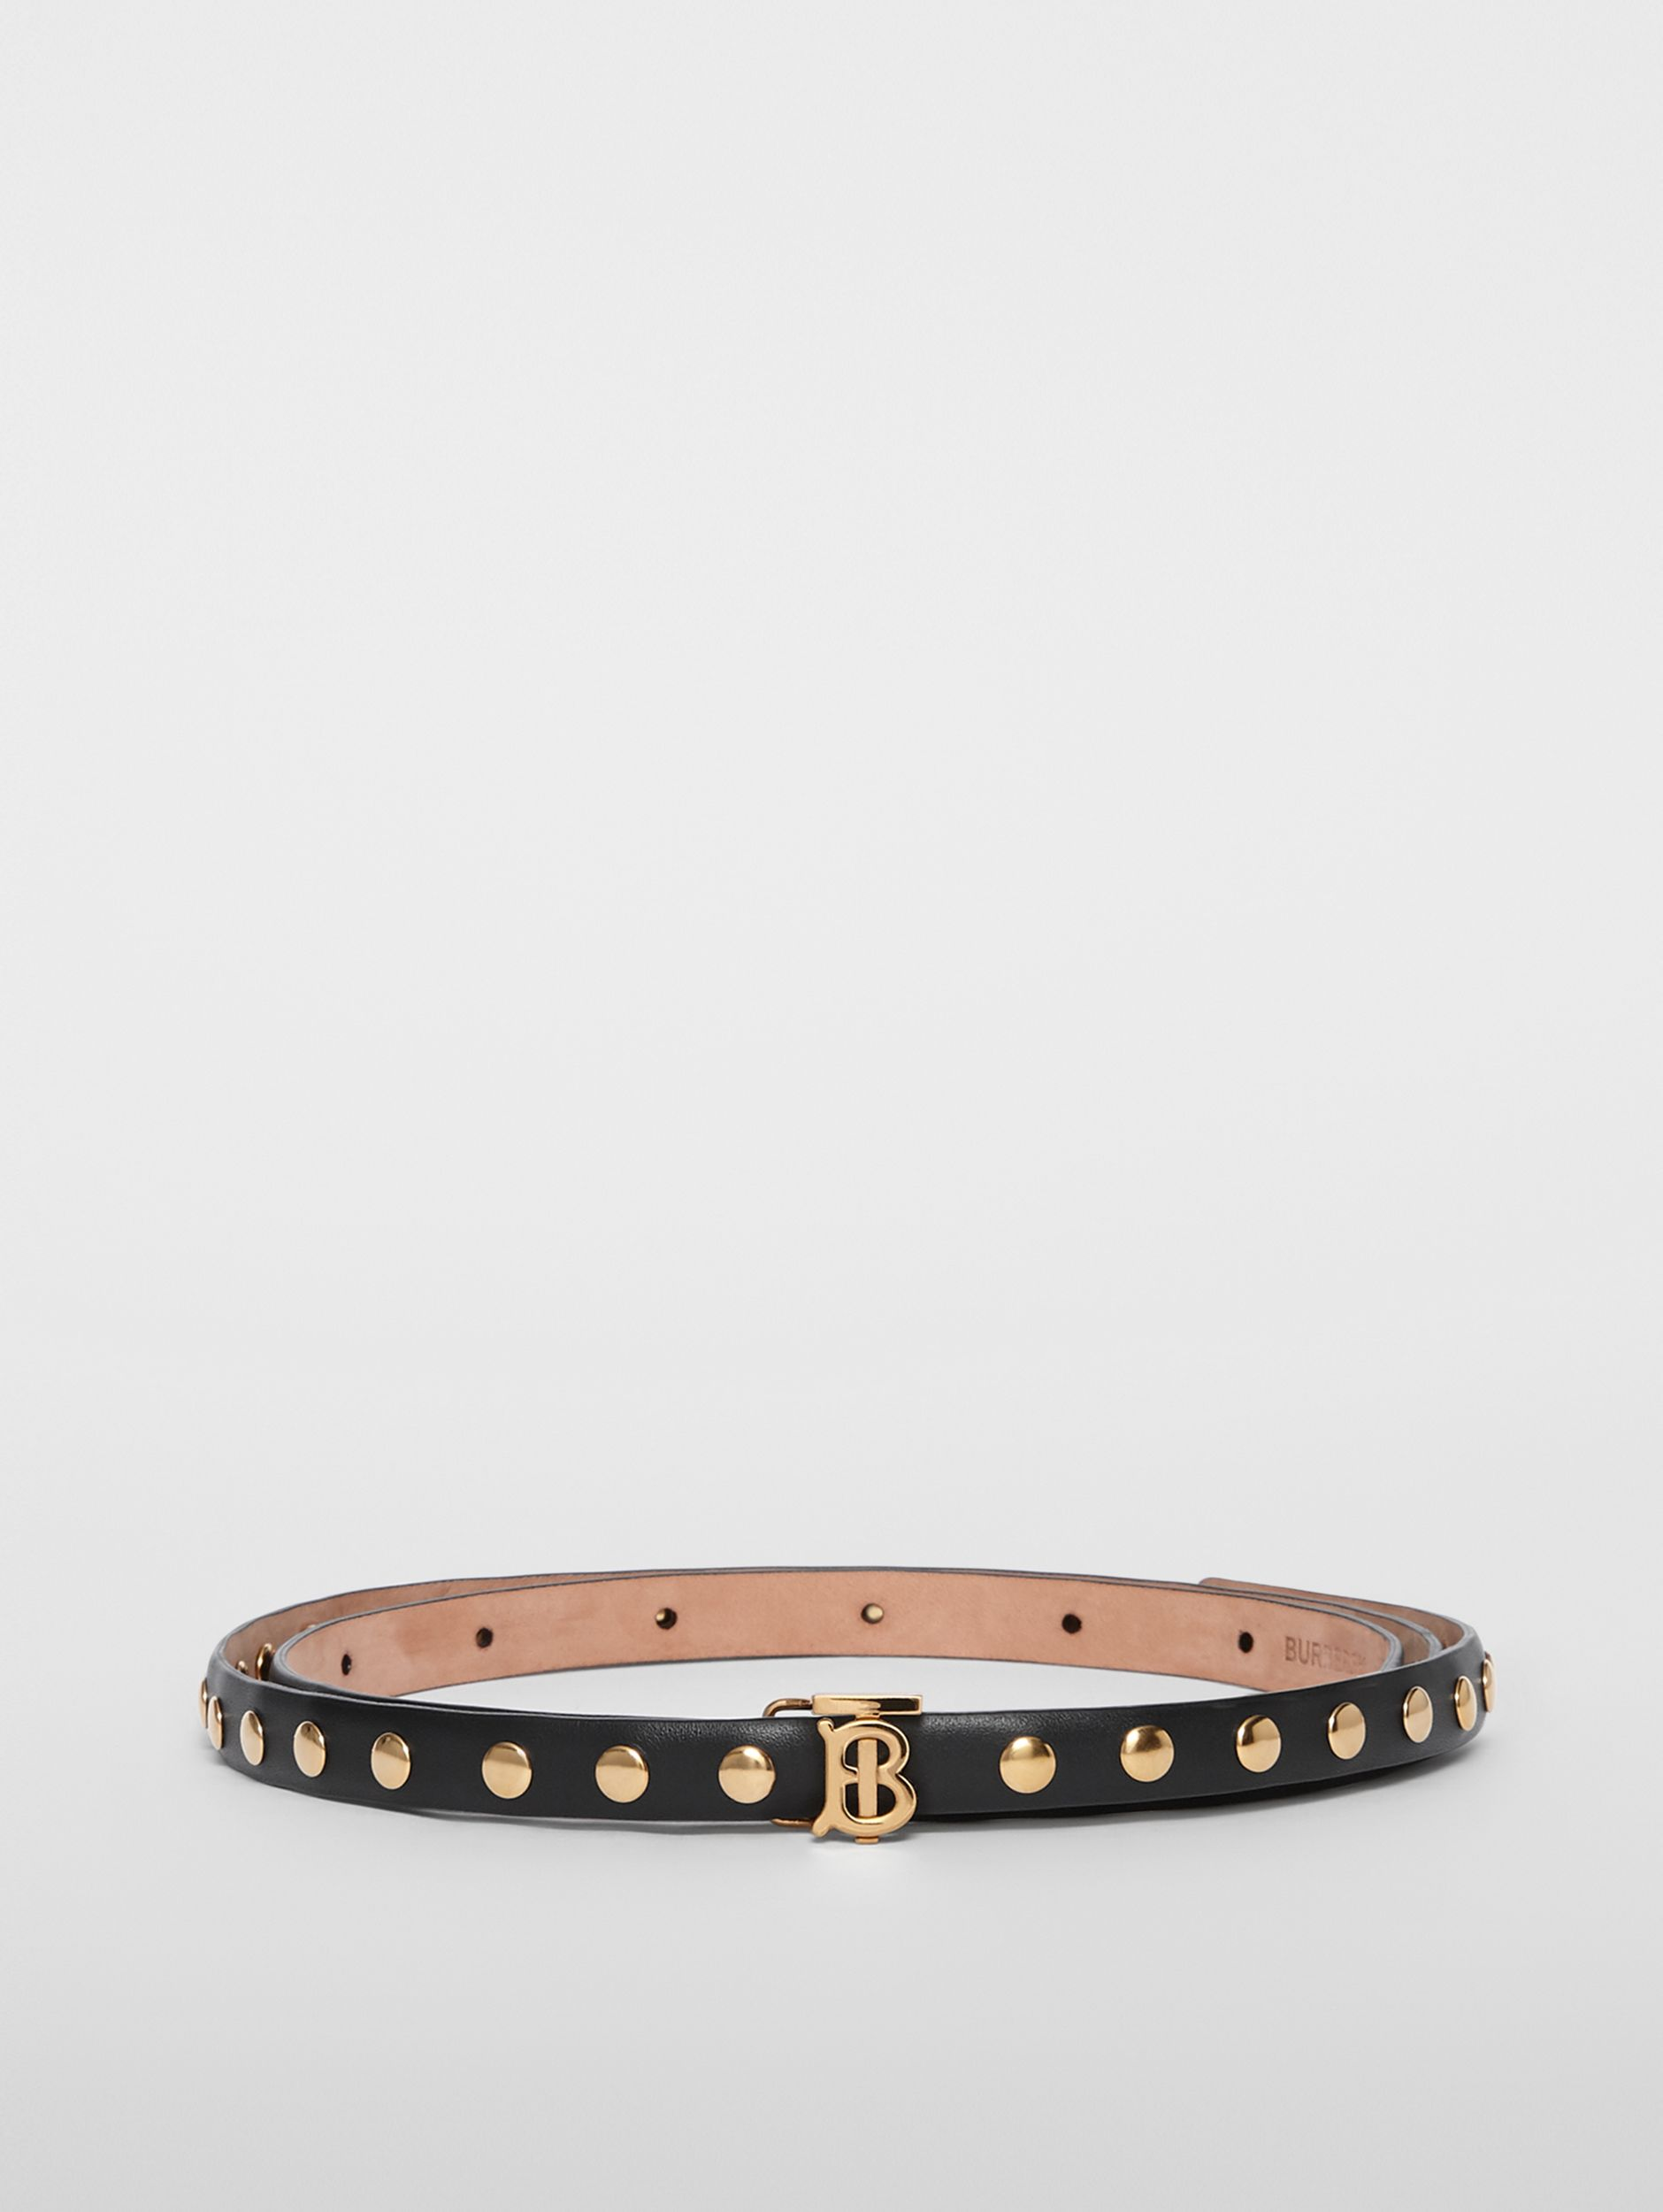 Monogram Motif Studded Leather Belt in Black/light Gold - Women | Burberry - 4